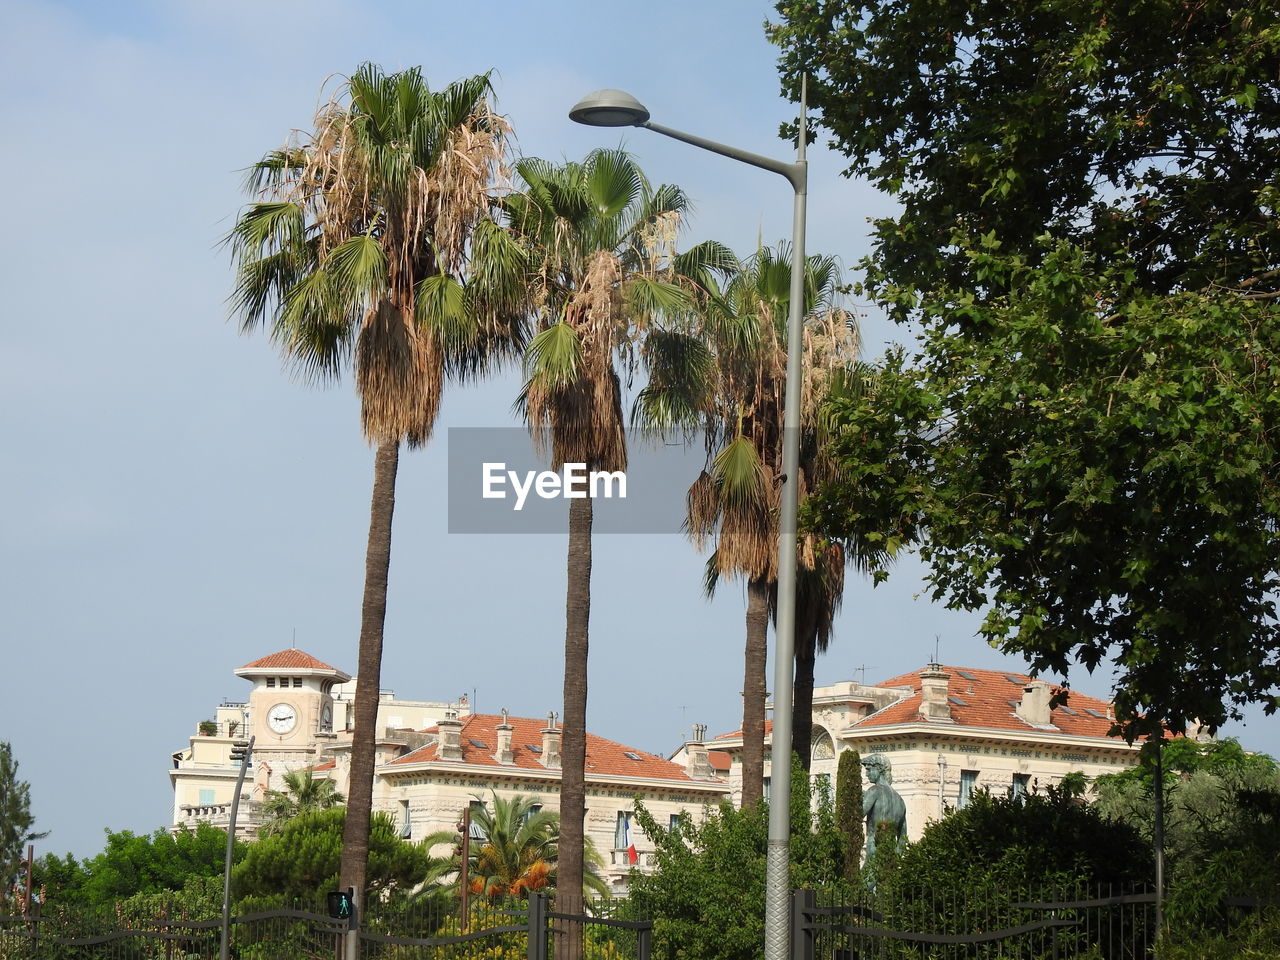 tree, plant, architecture, building exterior, built structure, sky, nature, no people, day, building, palm tree, growth, city, green color, tropical climate, low angle view, outdoors, residential district, street, house